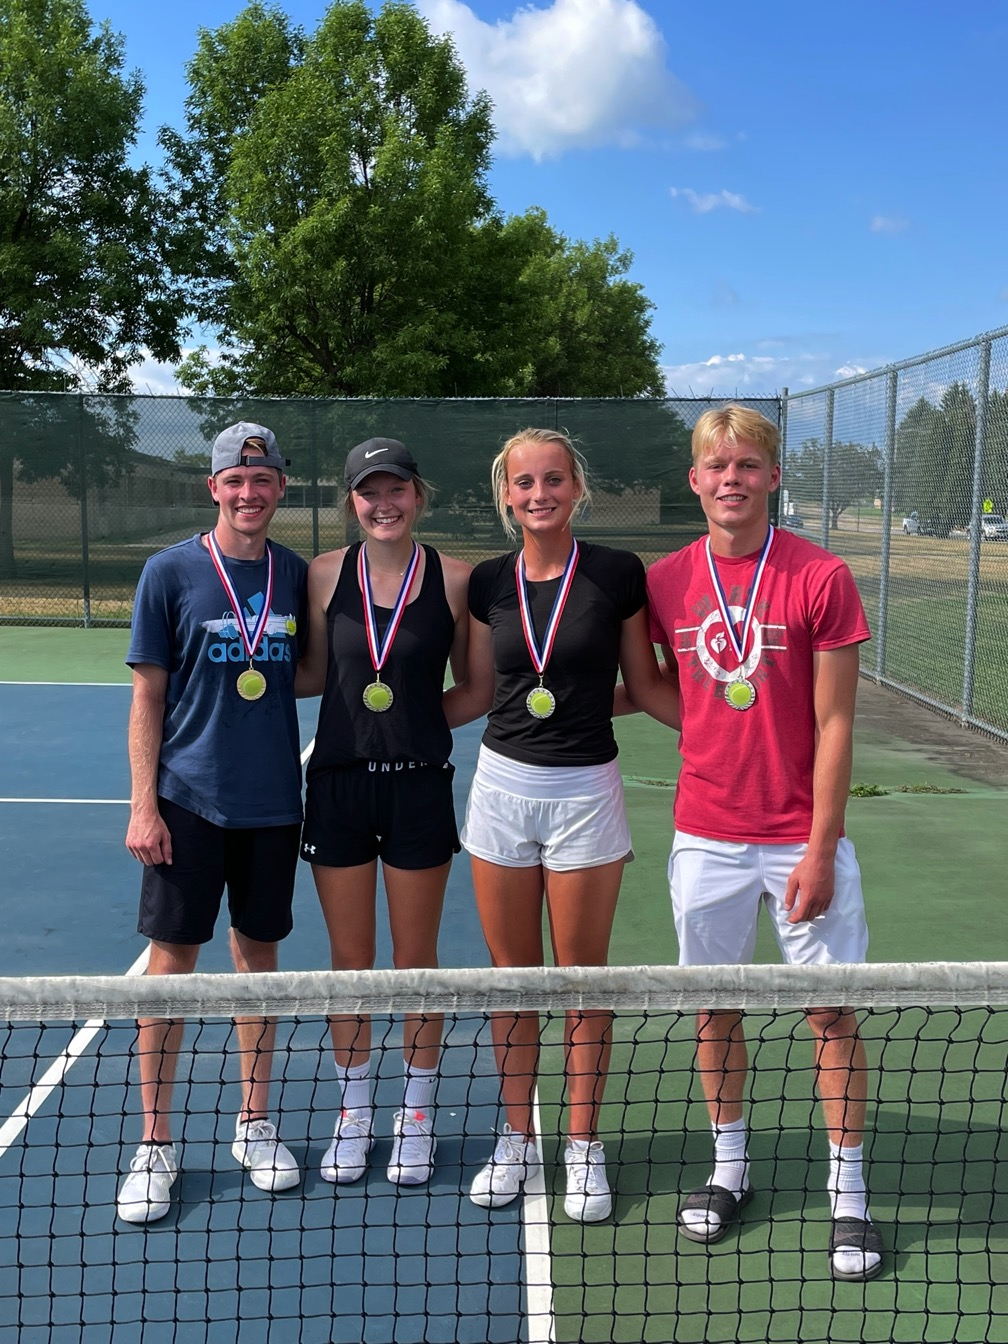 Mixed Doubles Final:  Champions Matthew Wedin and Taylar Smith - Finalists Avery Stilwell and Tyson Michels